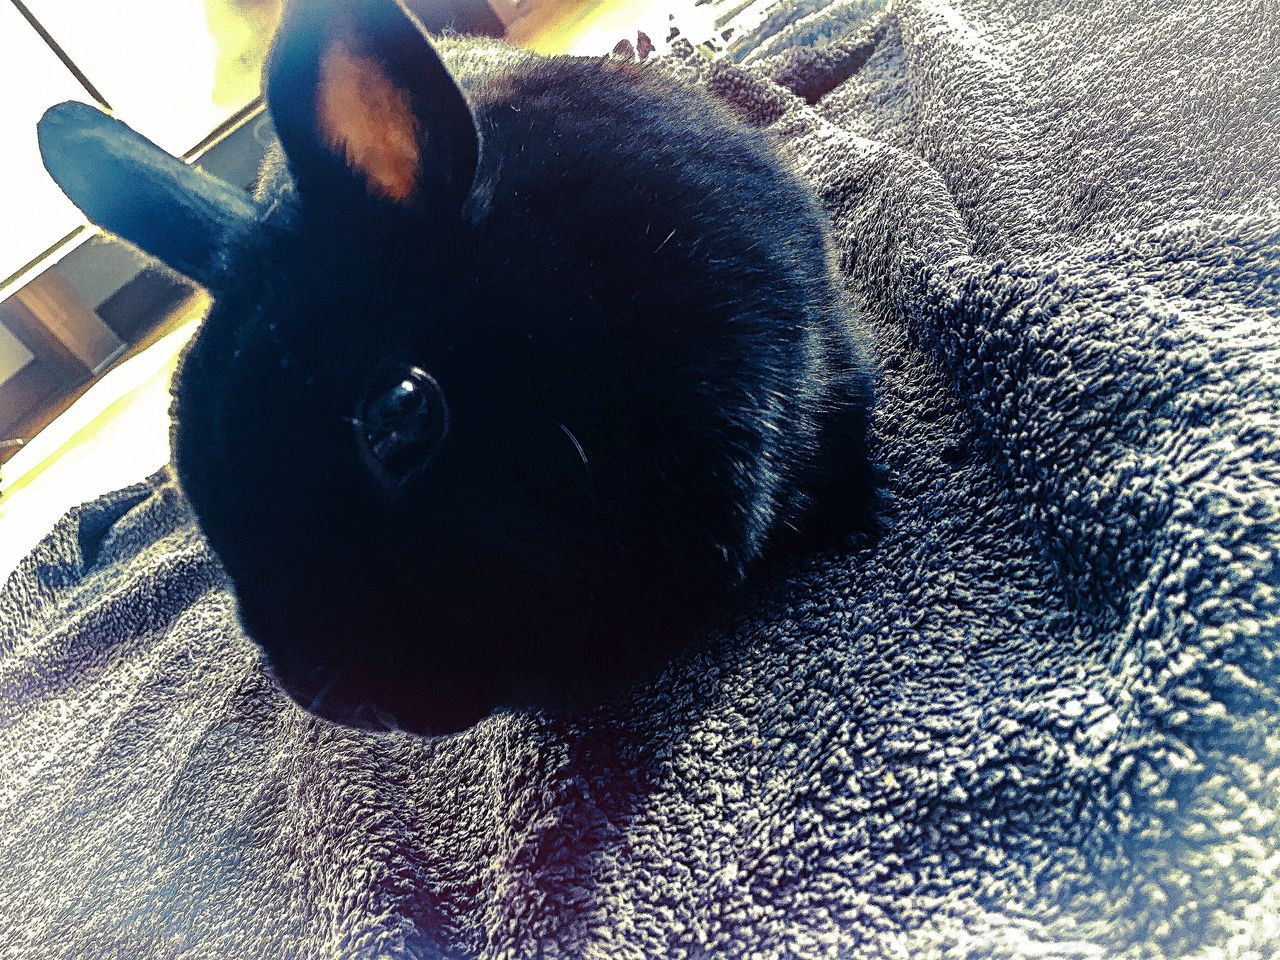 Black Bunny! One Animal Pets Domestic Animals Animal Themes Close-up Rabbit Rabbits IPhoneography Lovephotoeffect BeCreative Beautiful Nature Relaxing Moments Relax